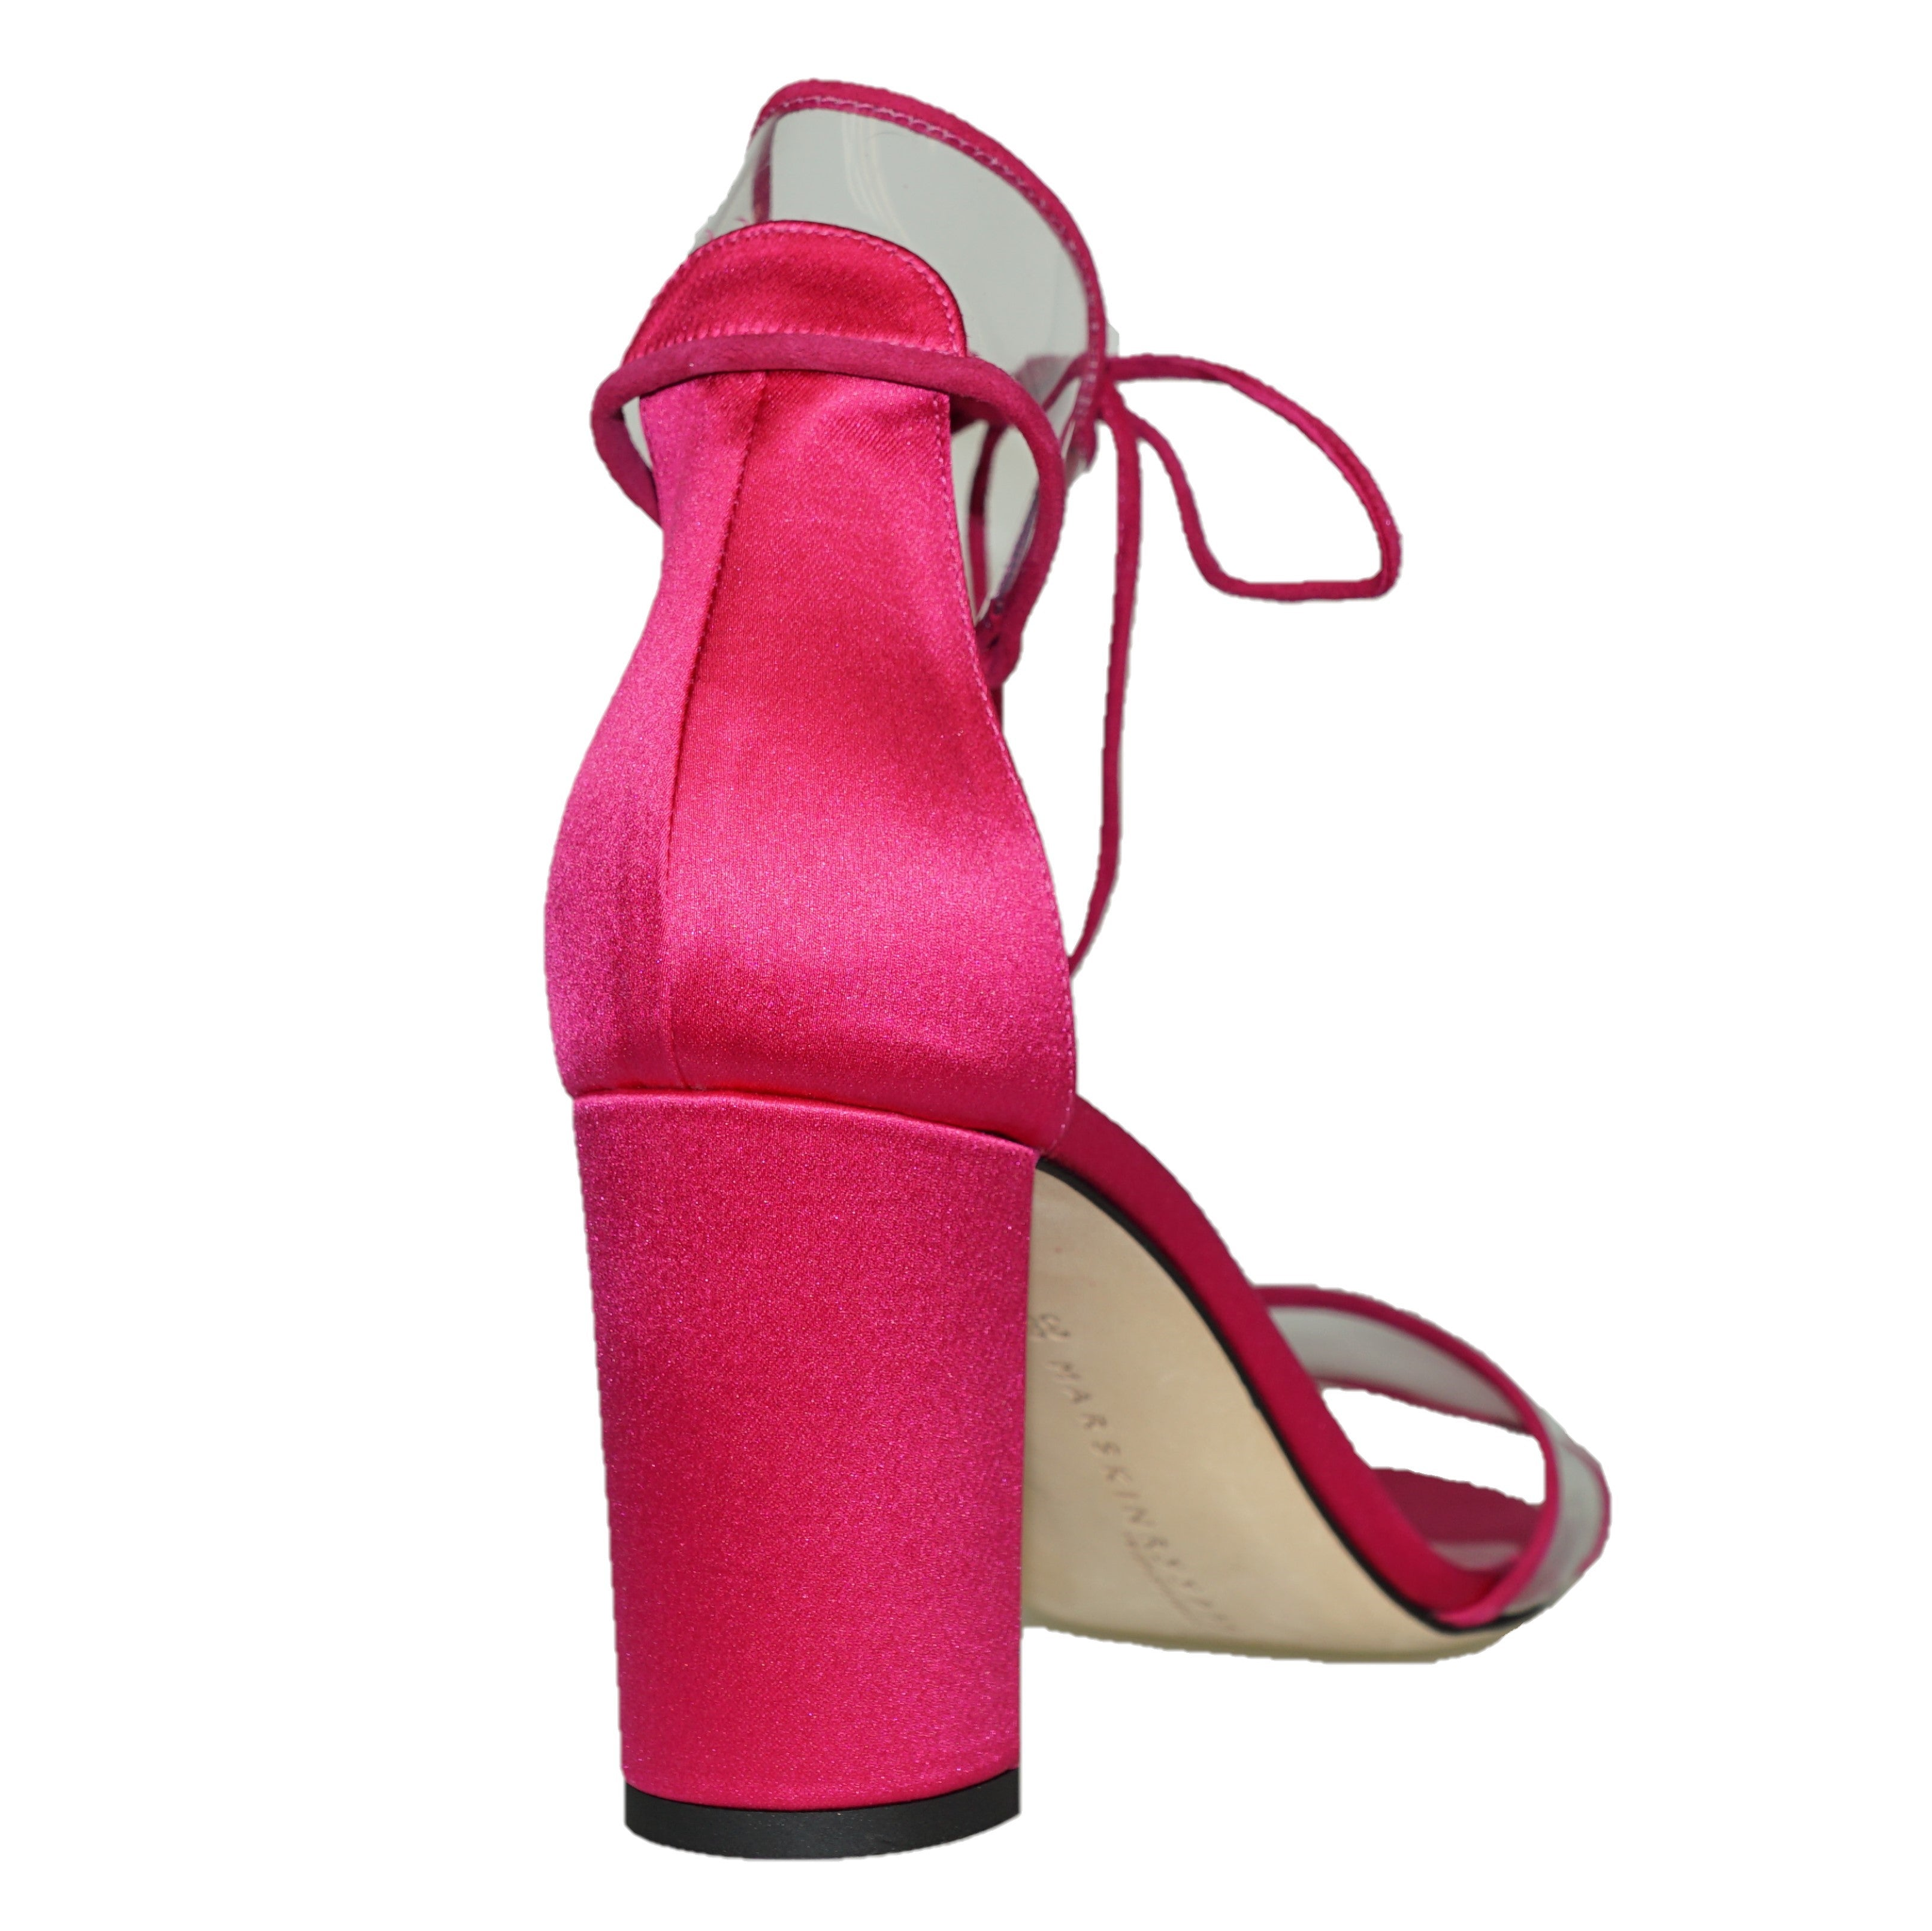 MARSKIN RYYPPY Cora satin and PVC sandals